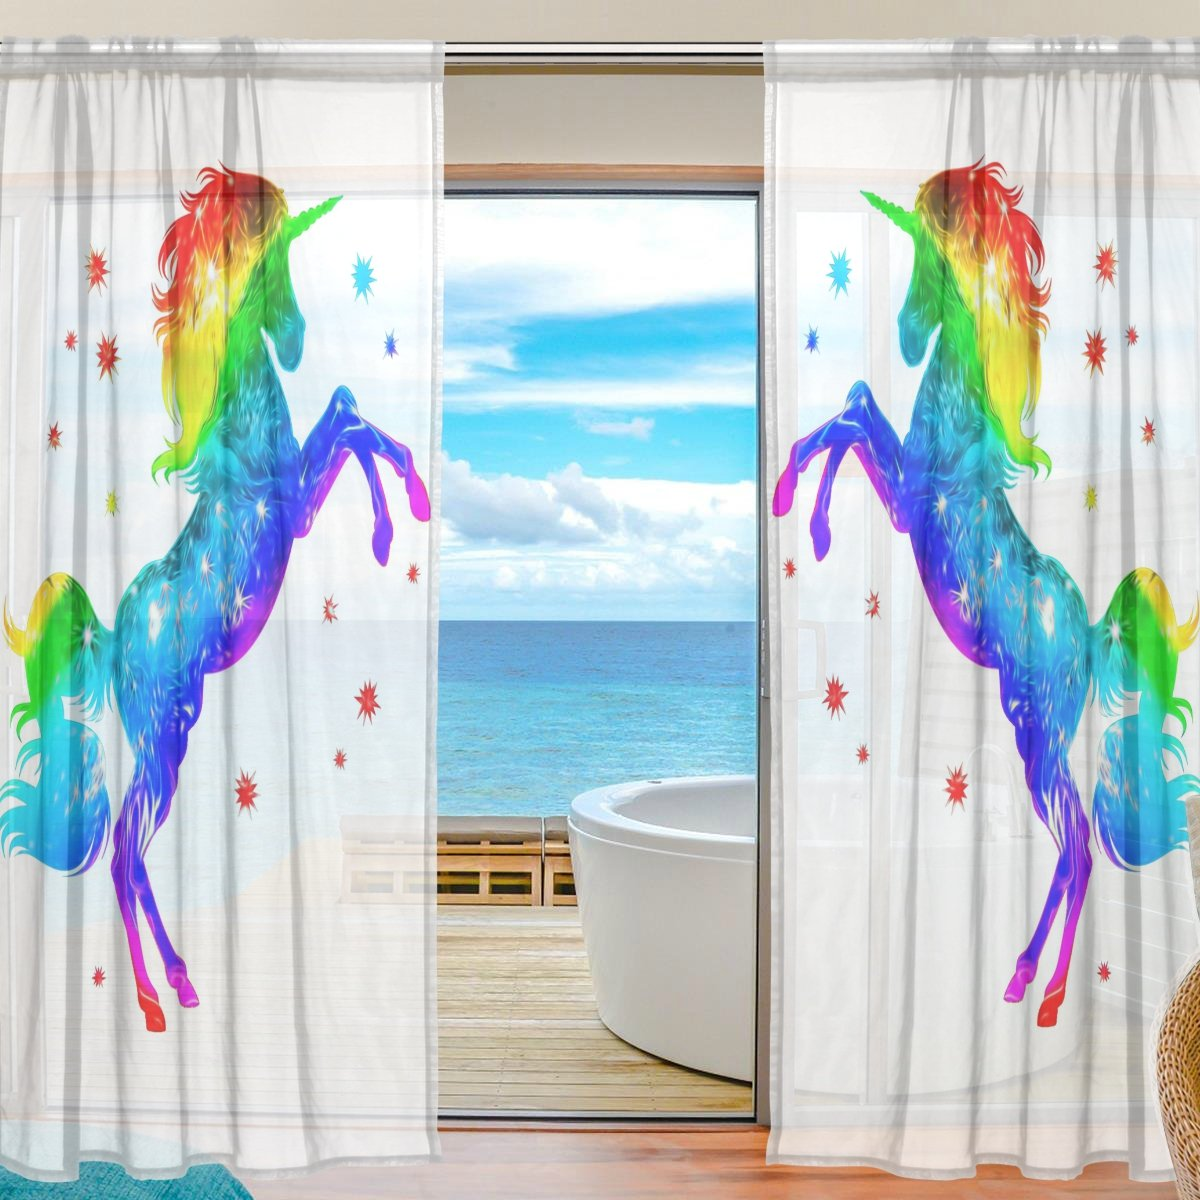 SEULIFE Window Sheer Curtain, Rainbow Unicorn Animal Star Voile Curtain Drapes for Door Kitchen Living Room Bedroom 55x84 inches 2 Panels